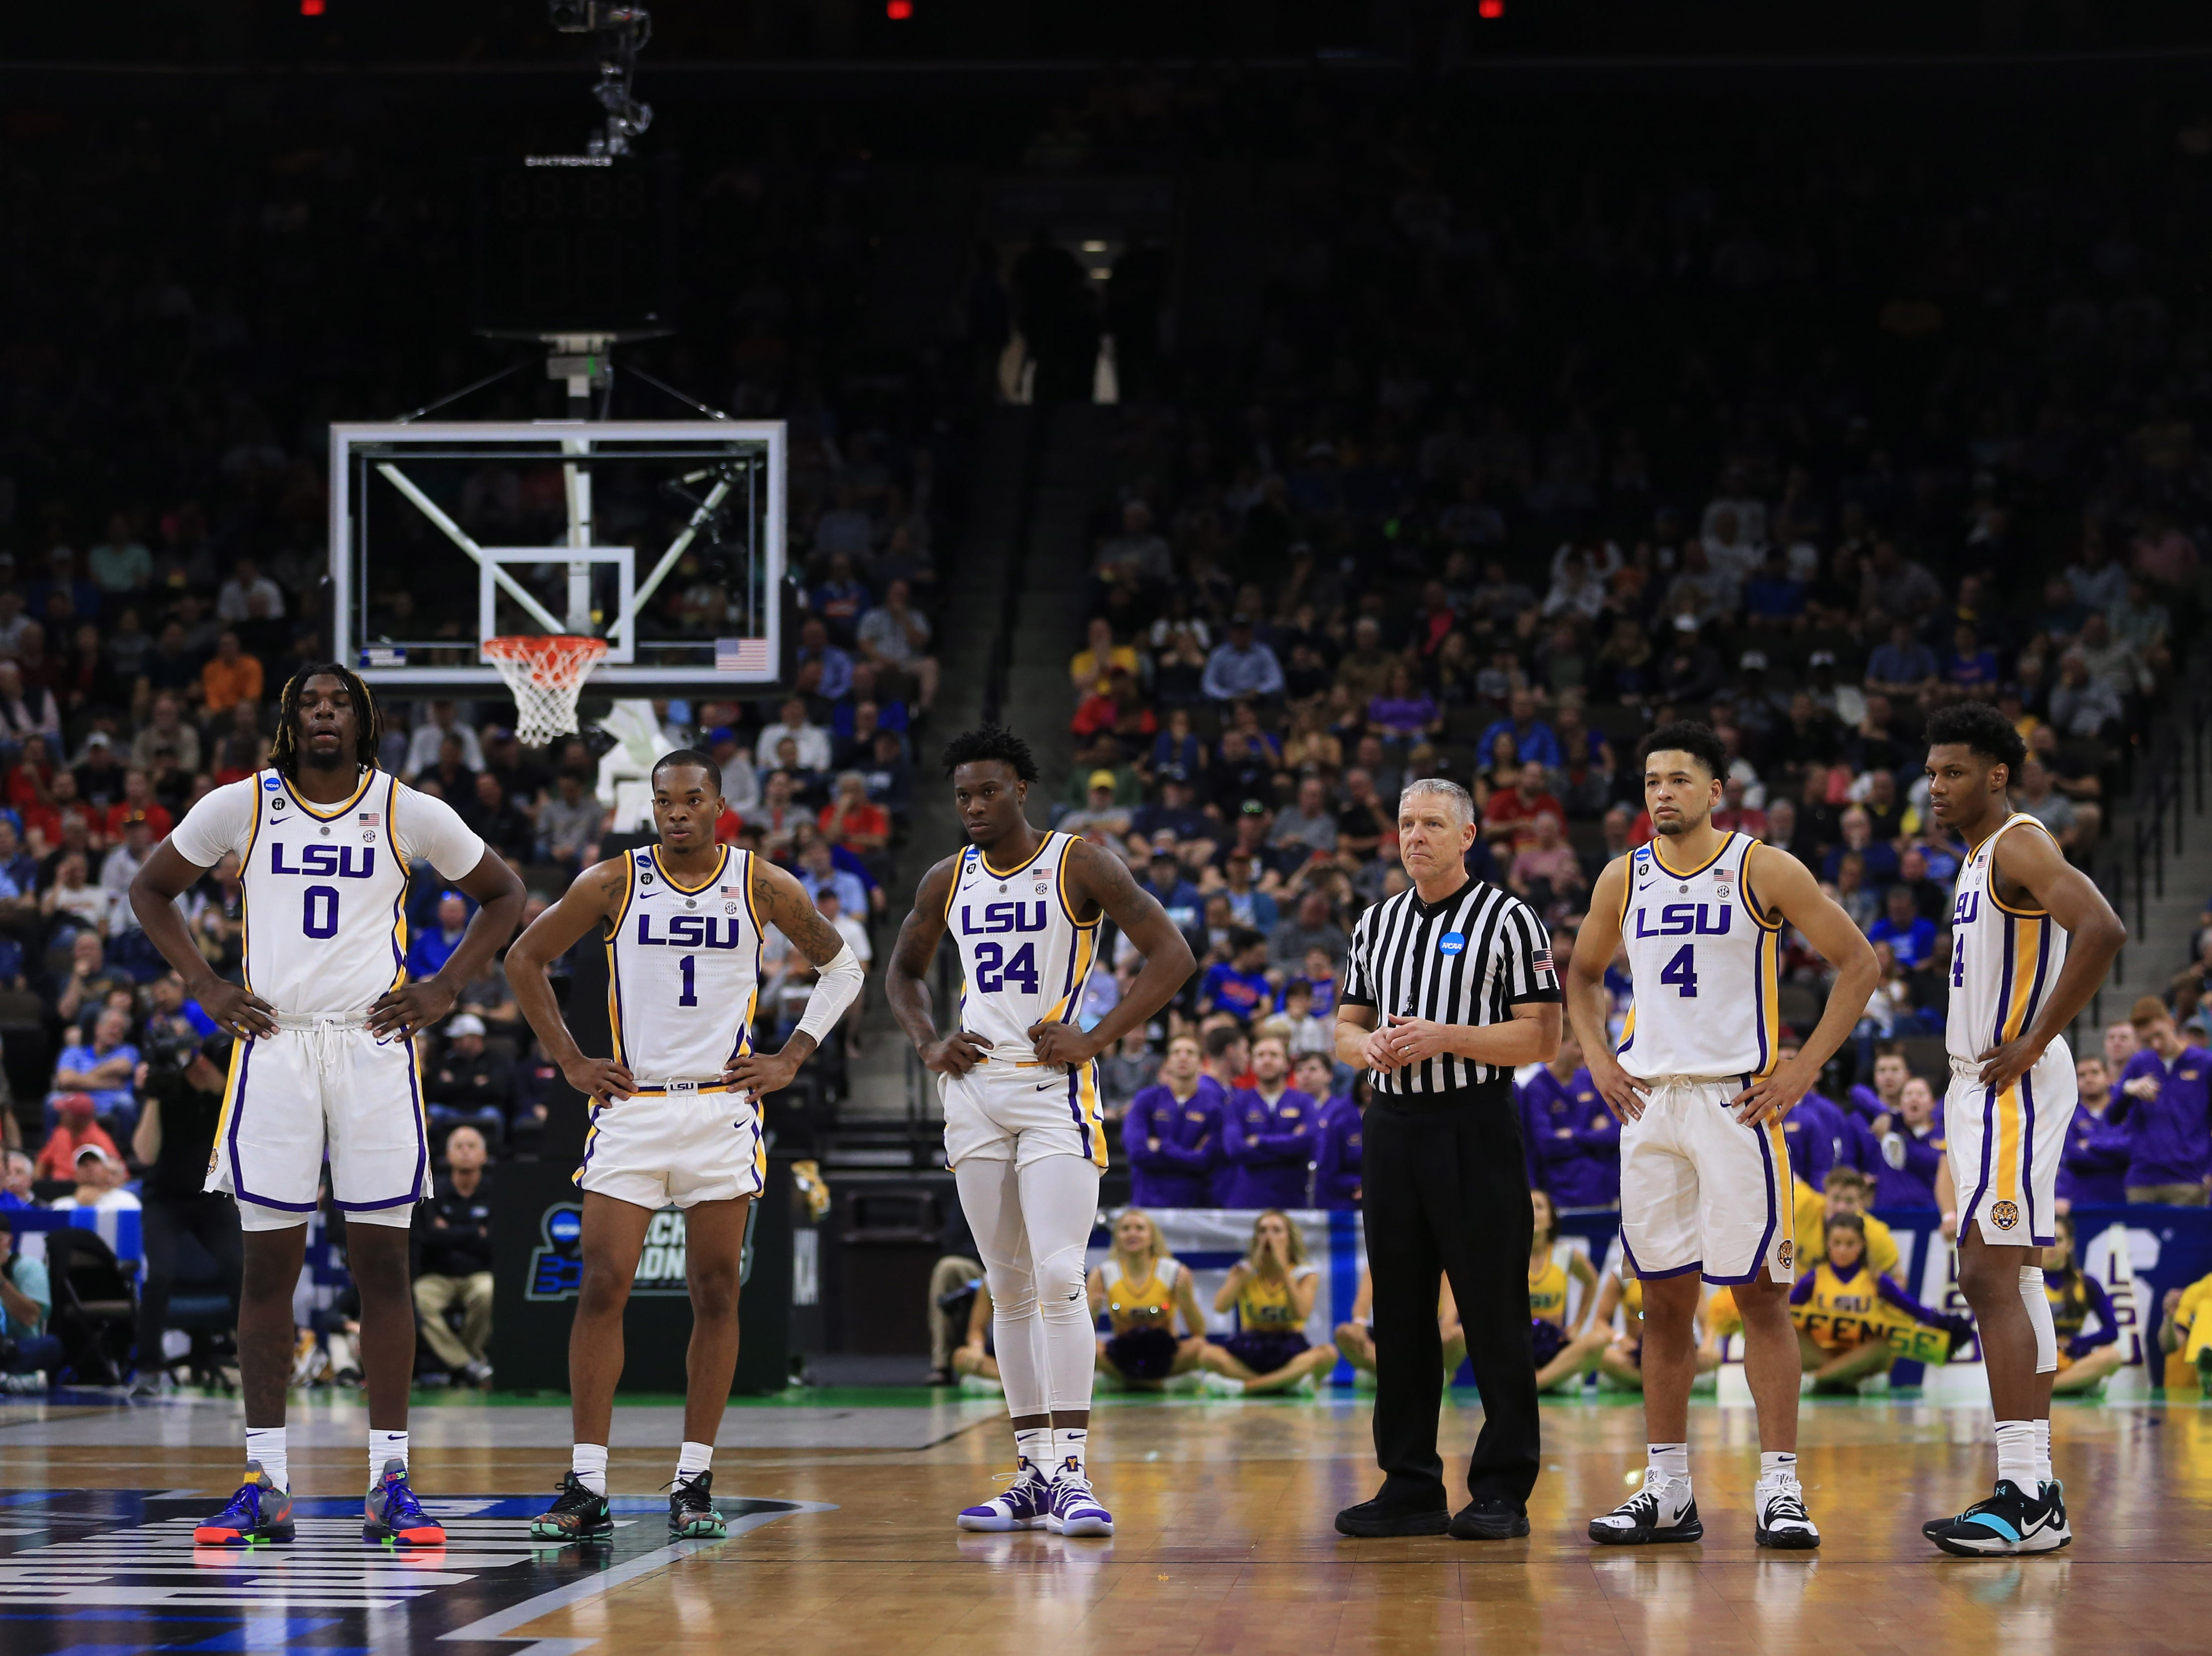 Mar 21, 2019; Jacksonville, FL, USA; The LSU Tigers look on a Yale Bulldogs guard Alex Copeland (not pictured) shoots a free throw for a technical foul at LSU guard Javonte Smart (1) during the second half in the first round of the 2019 NCAA Tournament at Jacksonville Veterans Memorial Arena. Mandatory Credit: Matt Stamey-USA TODAY Sports